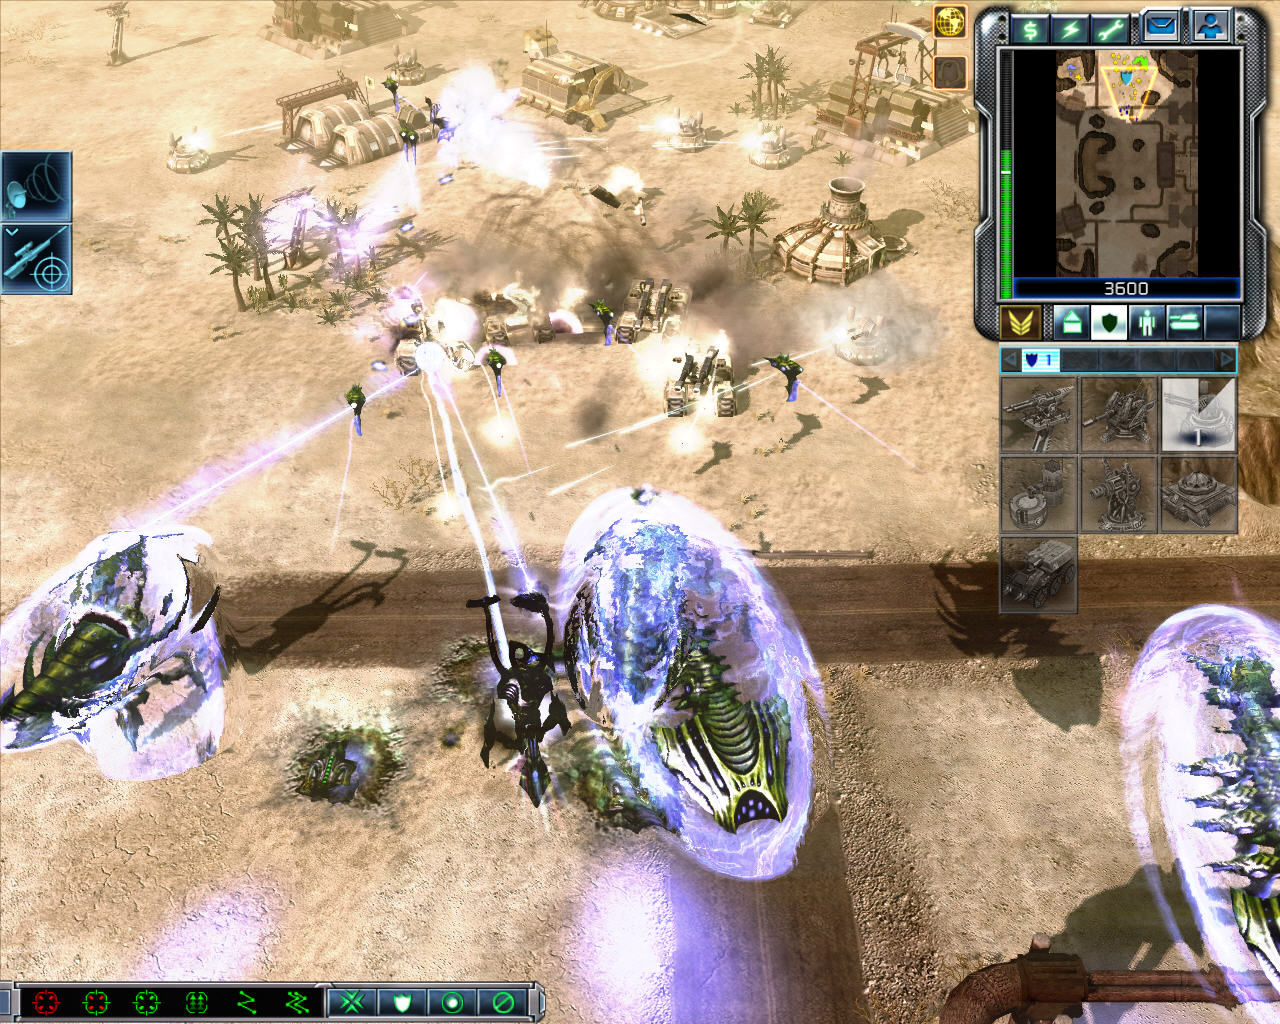 Command & Conquer 3: Tiberium Wars Windows My base is under attack by Scrin forces (Multiplayer mode).